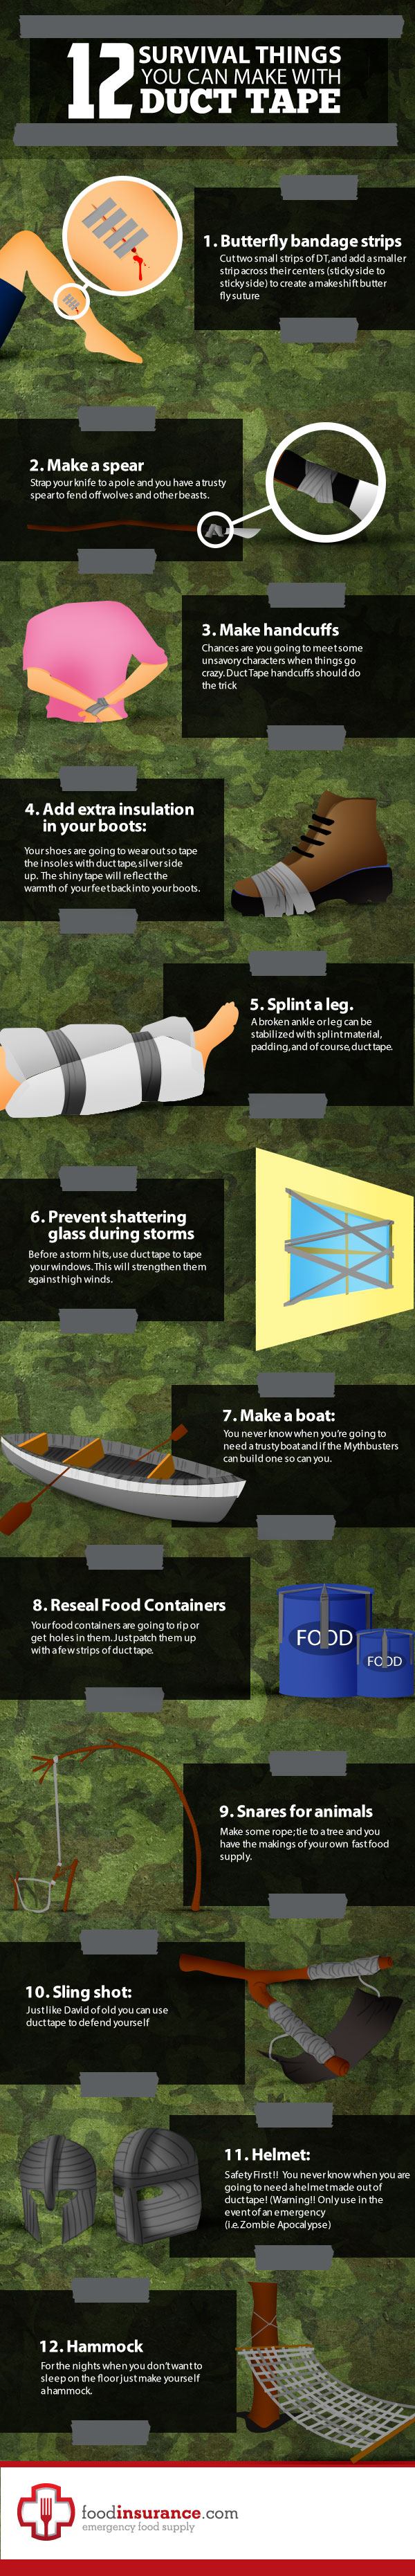 12 survival tips using duct tape infographic